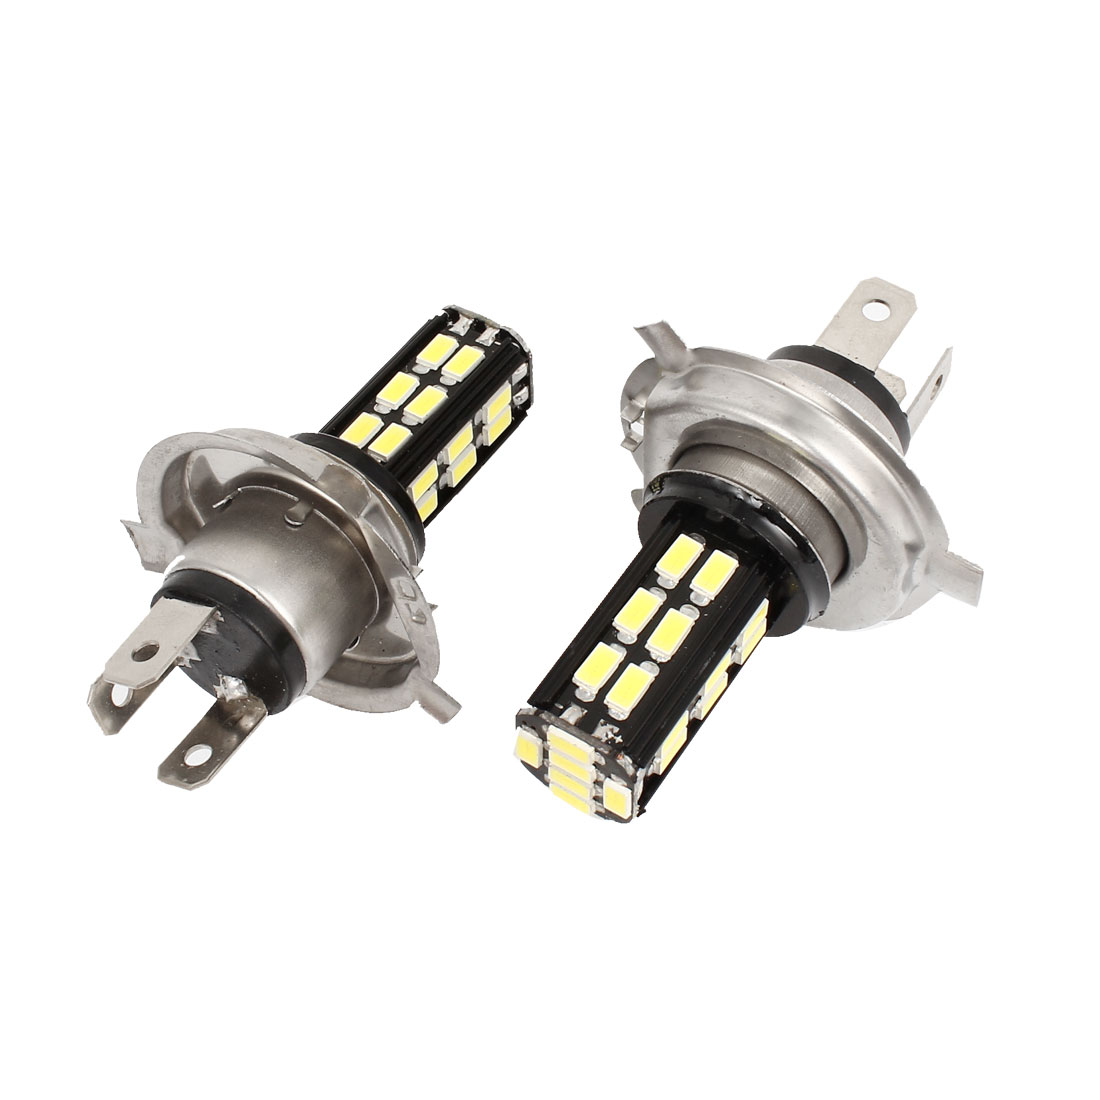 2 Pcs Car No Error 12-24V White H4 5630 SMD 30 LED DRL Headlight Fog Light Lamp